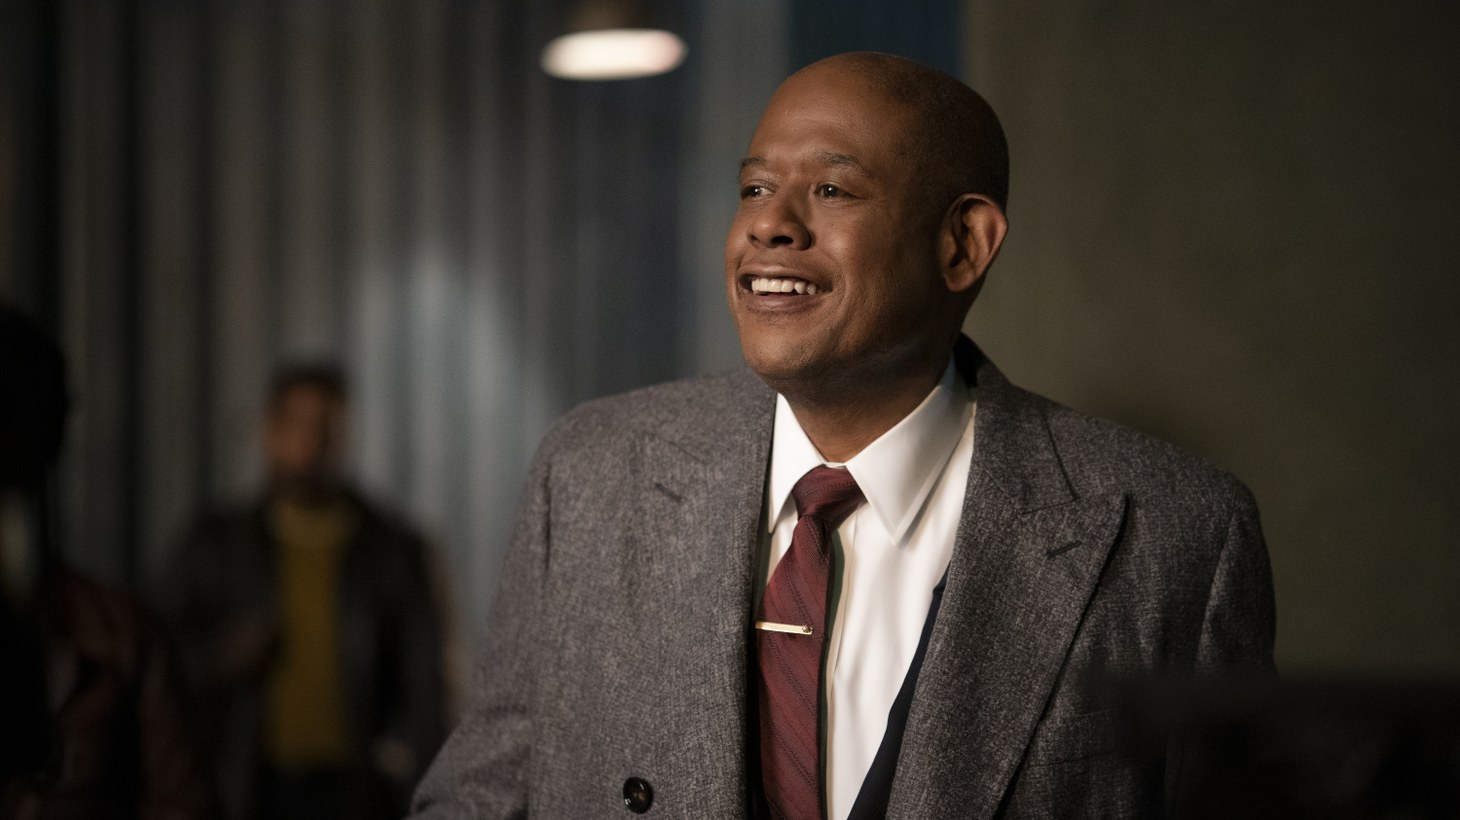 """In """"Godfather of Harlem,"""" Forest Whitaker plays Bumpy Johnson, a real-life crime boss from the 1960s."""